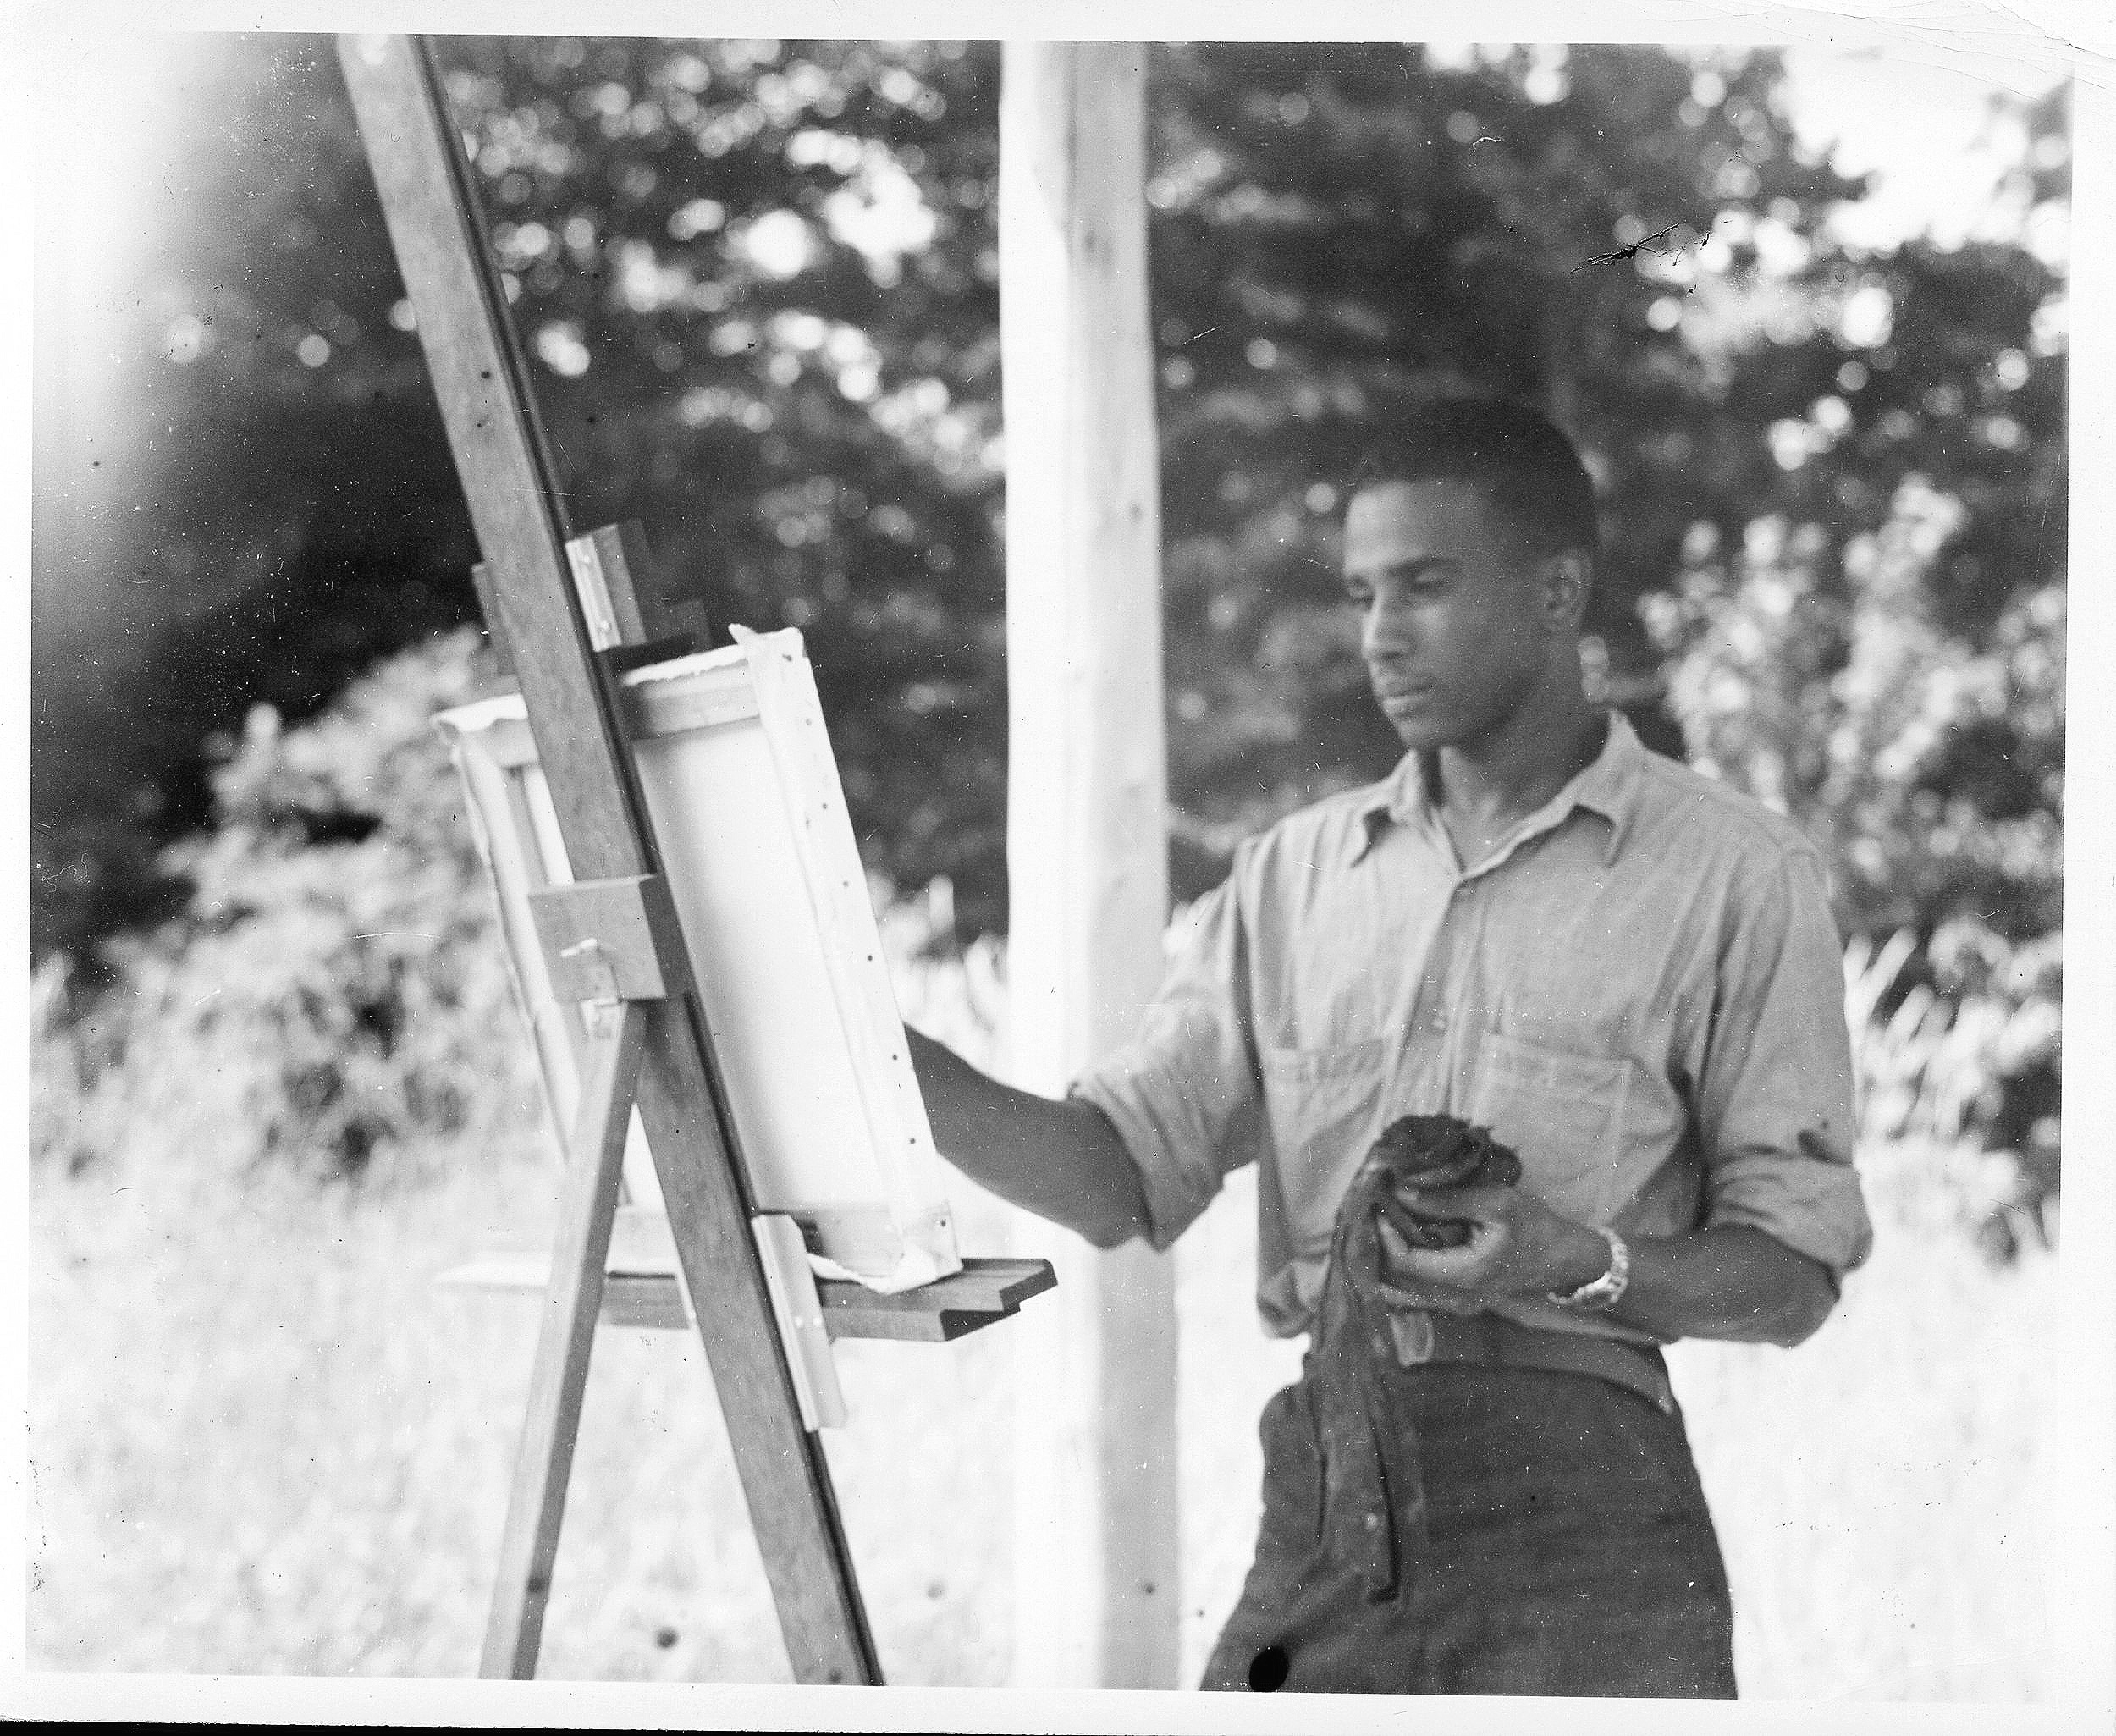 Ashley Bryan at Skowhegan School of Painting and Sculpture, 1946